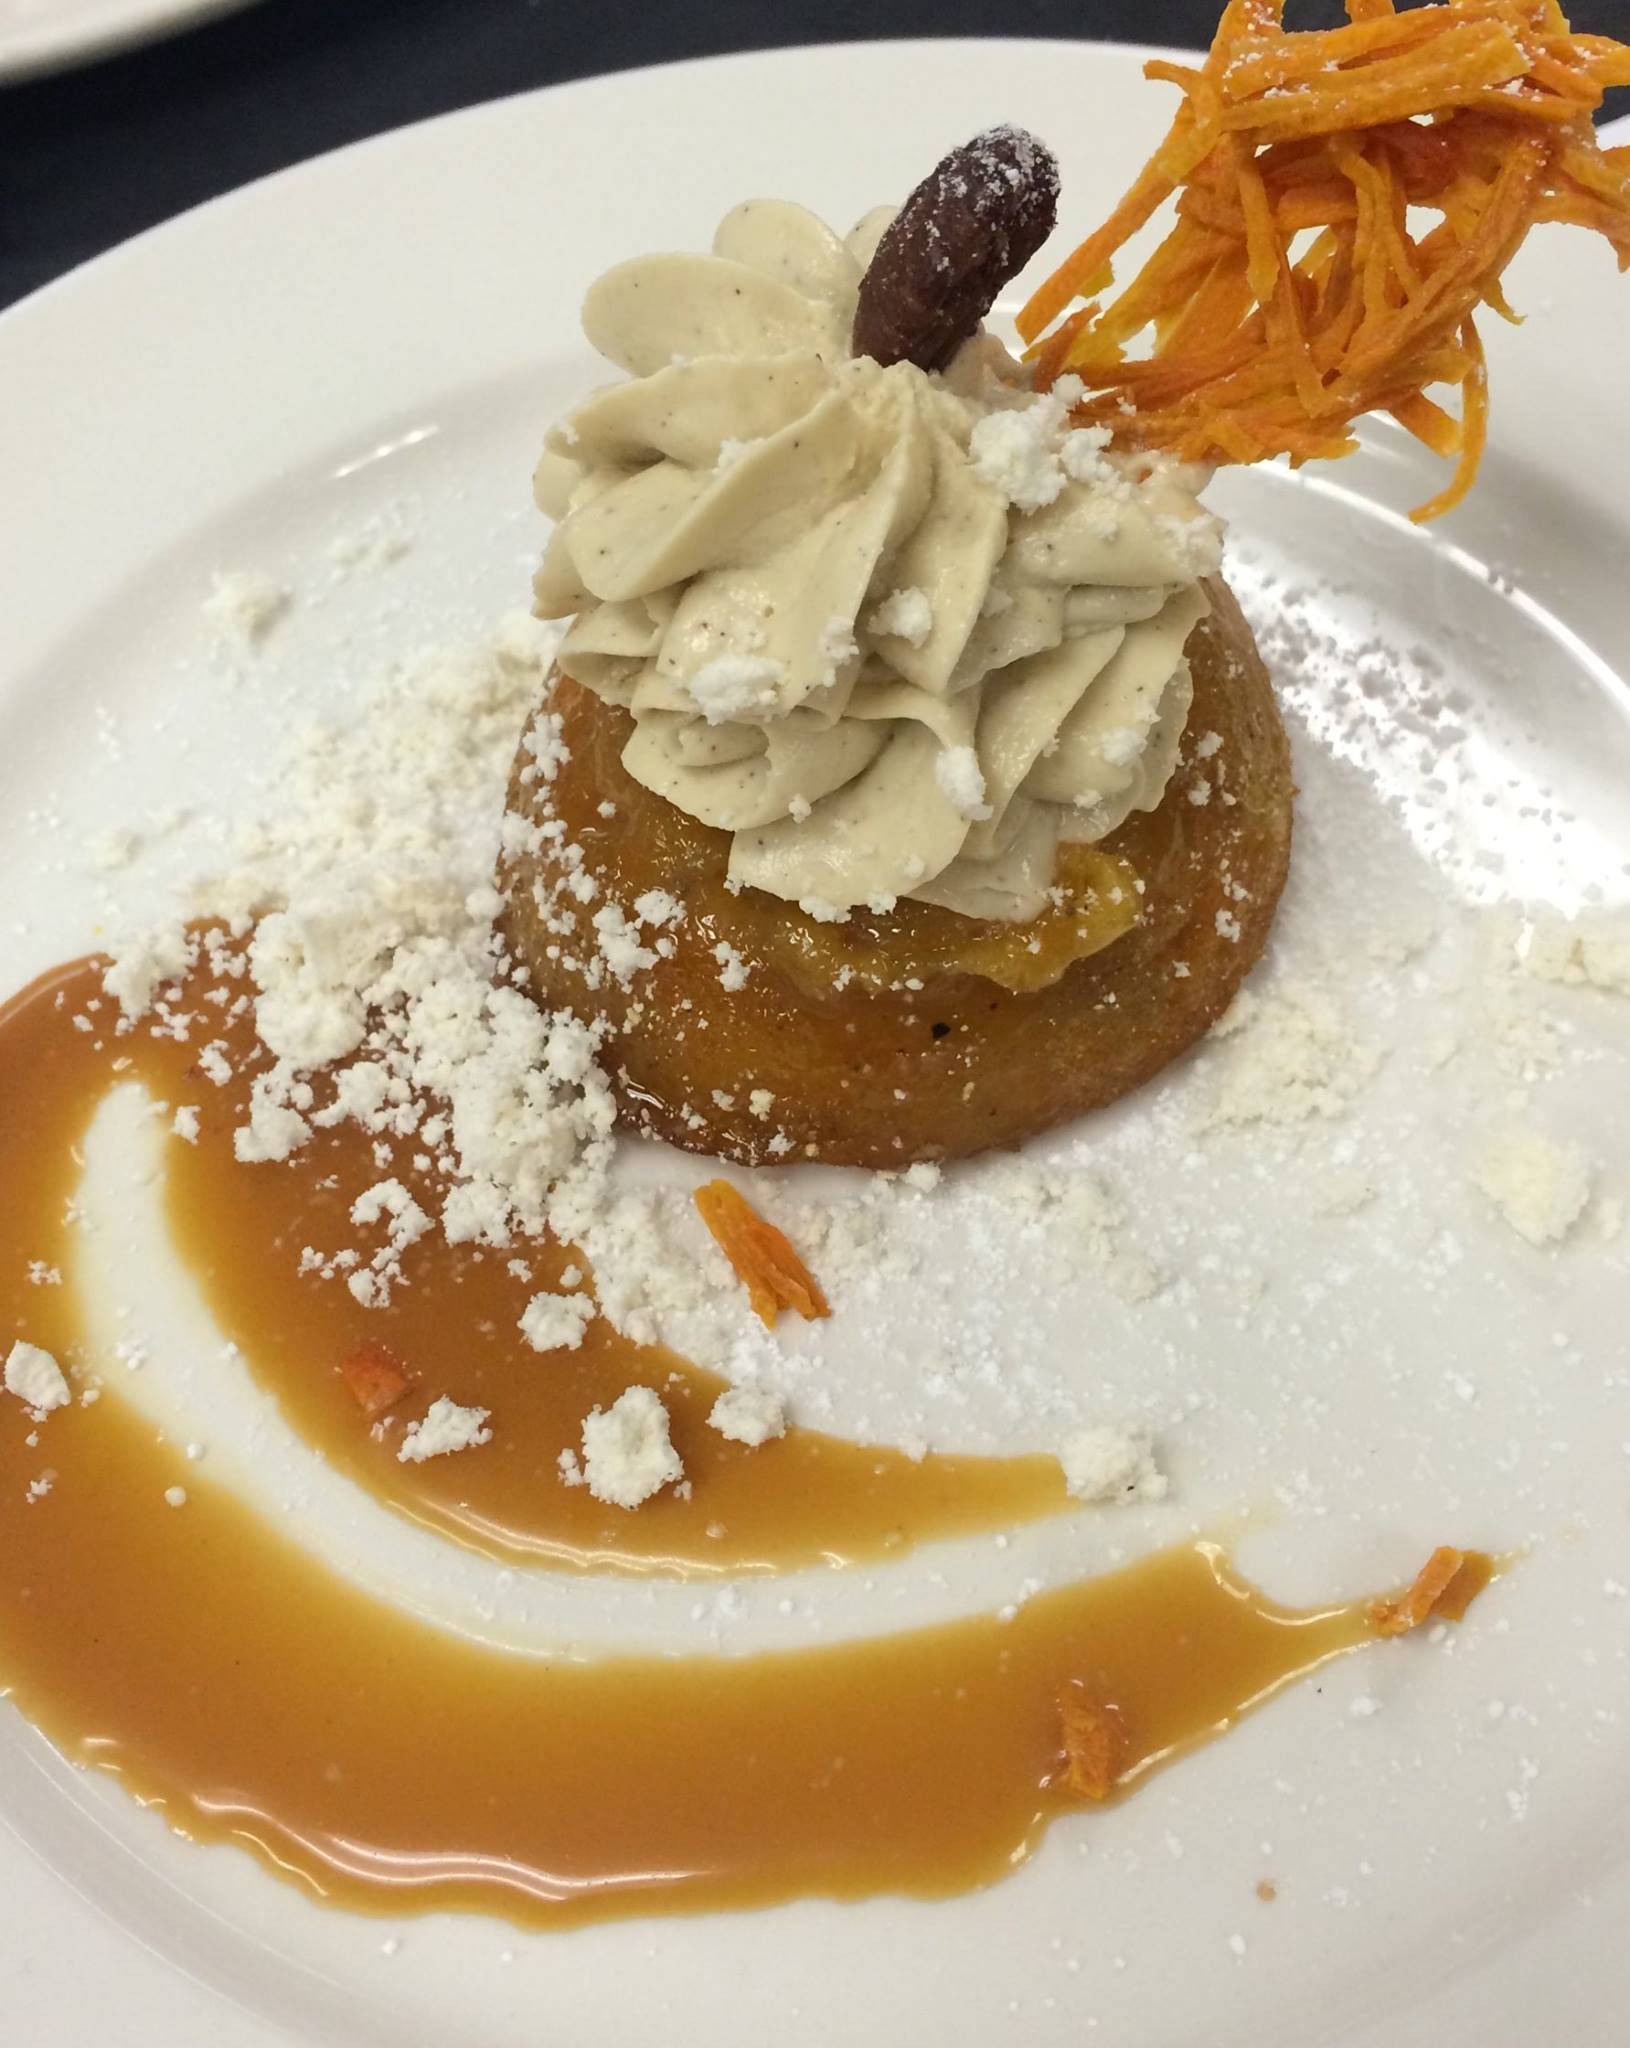 Roasted Pecan Carrot Cake with foie gras icing from Commander's Palace. (Photo courtesy Commander's Palace on Facebook)